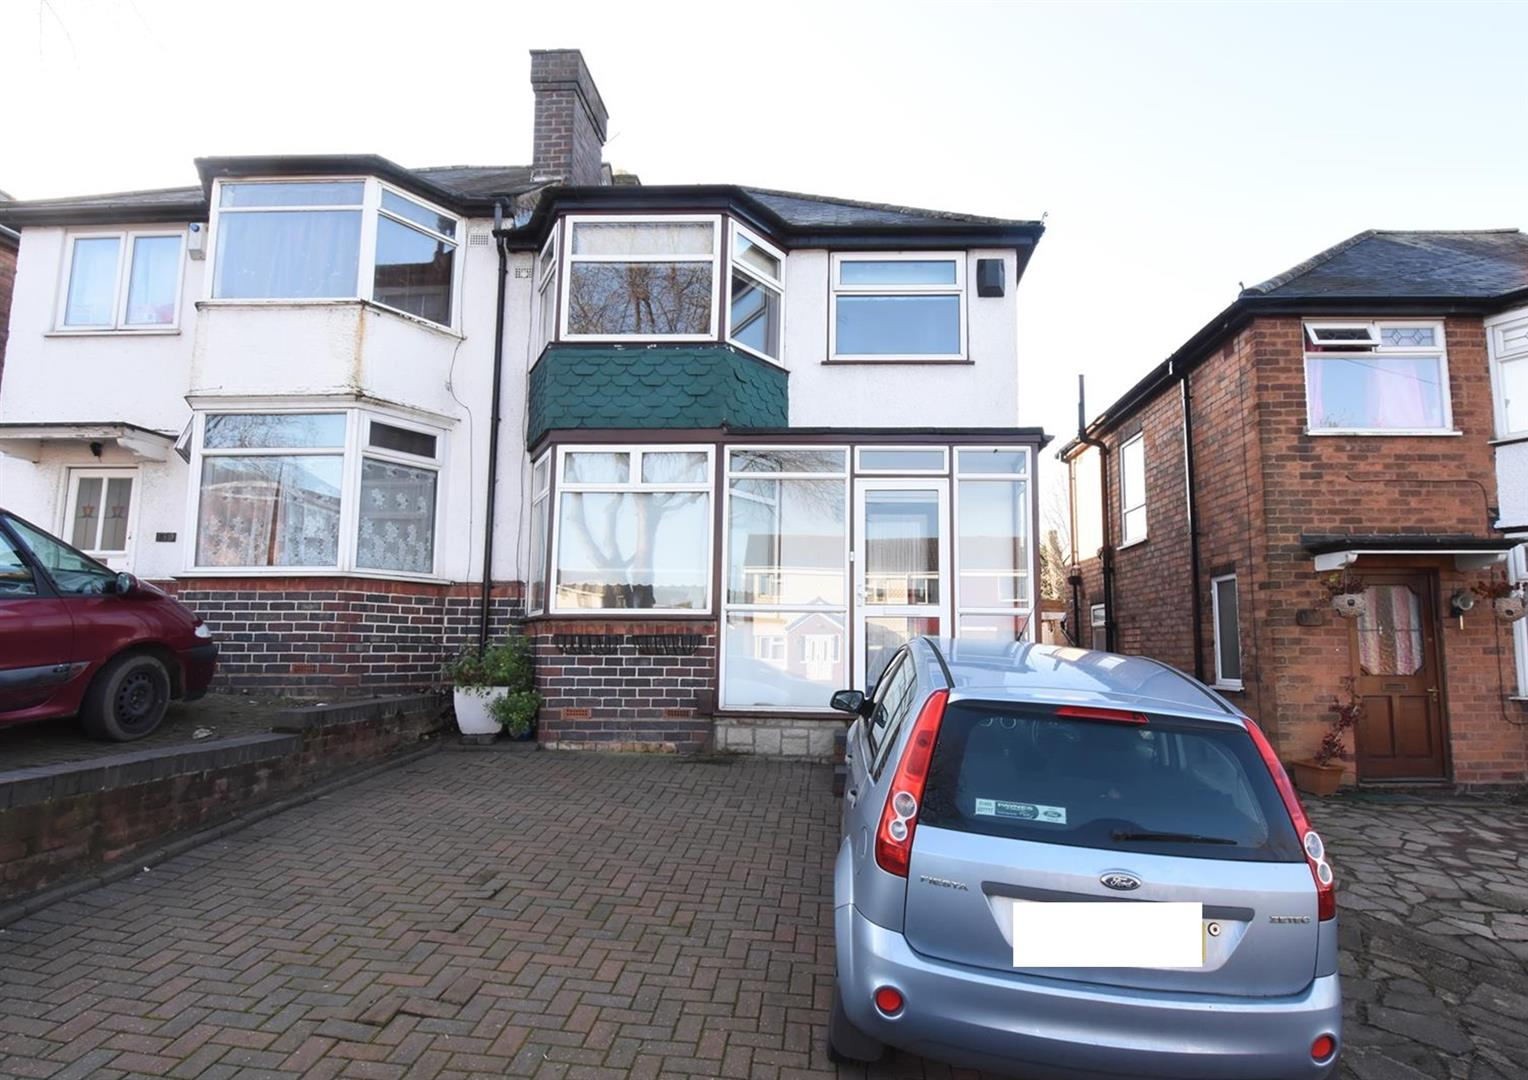 3 bed house for sale in Bromford Road, Hodge Hill, Birmingham B36 8HR, B36